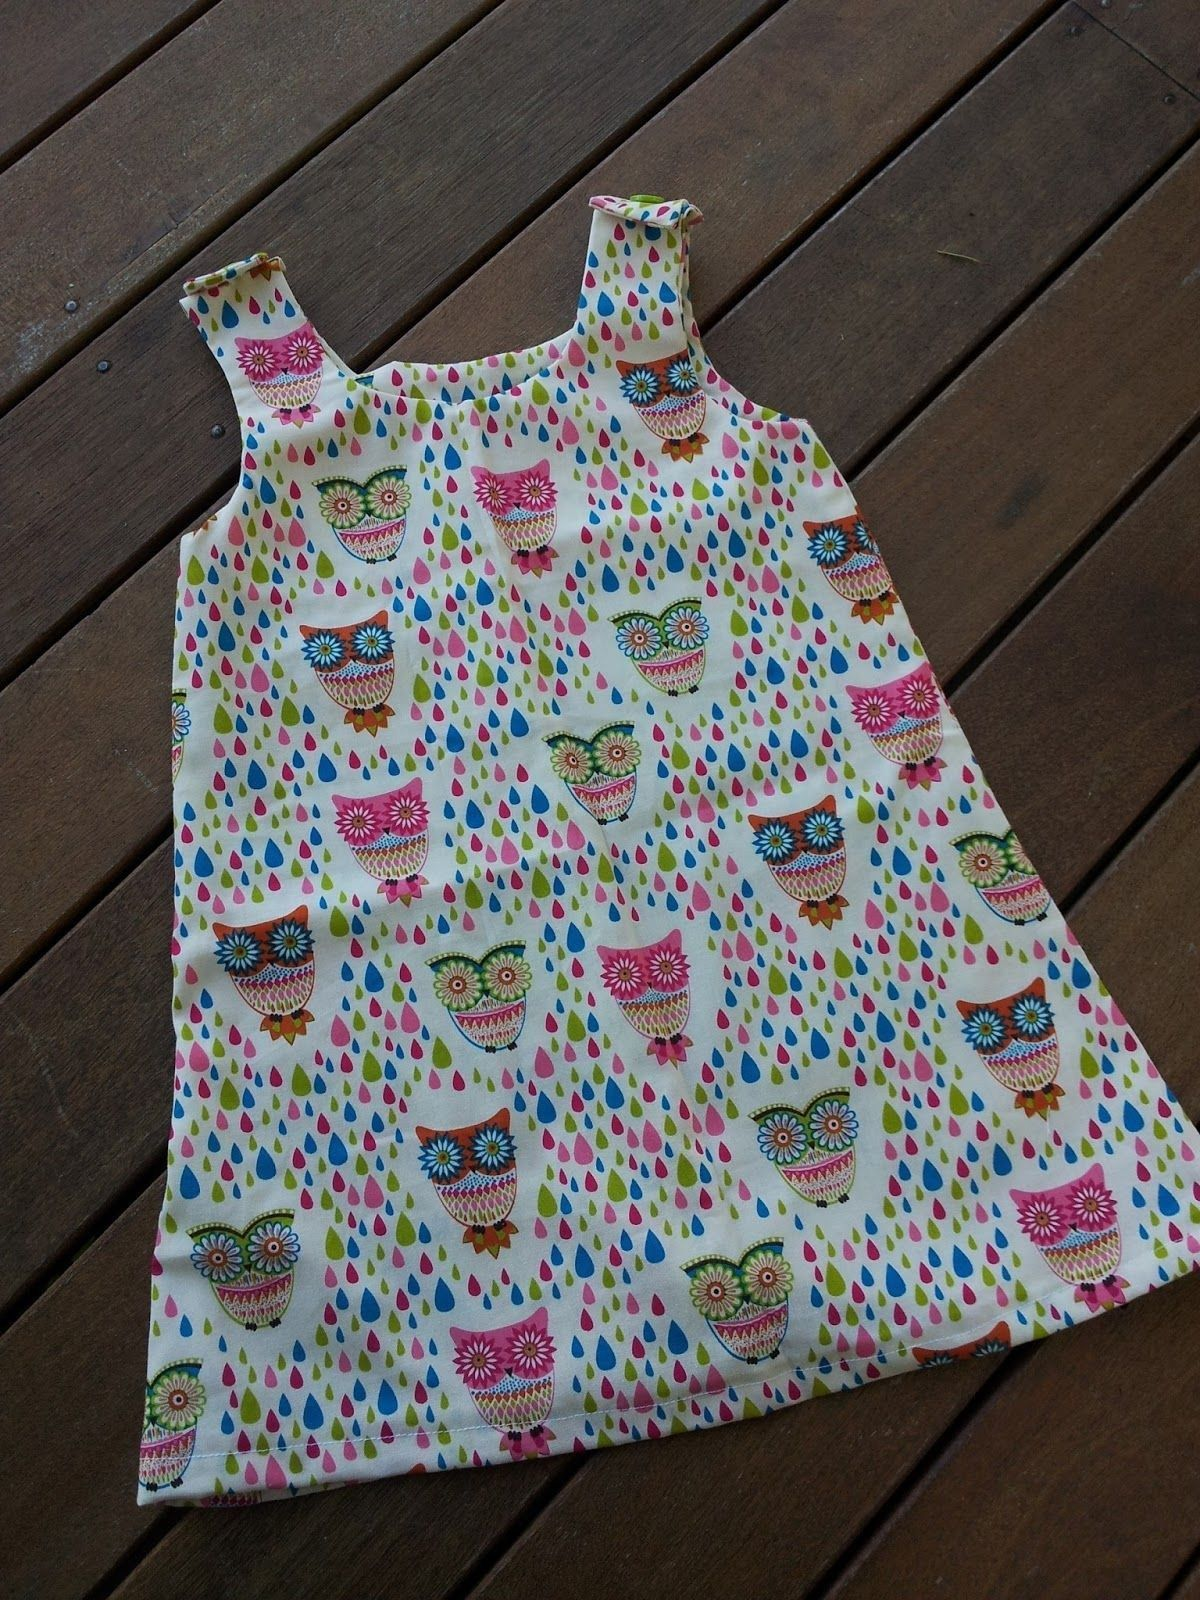 27 Awesome Image Of Free Baby Sewing Patterns Figswoodfiredbistro Com Toddler Dress Patterns Baby Sewing Patterns Free Toddler Sewing Patterns